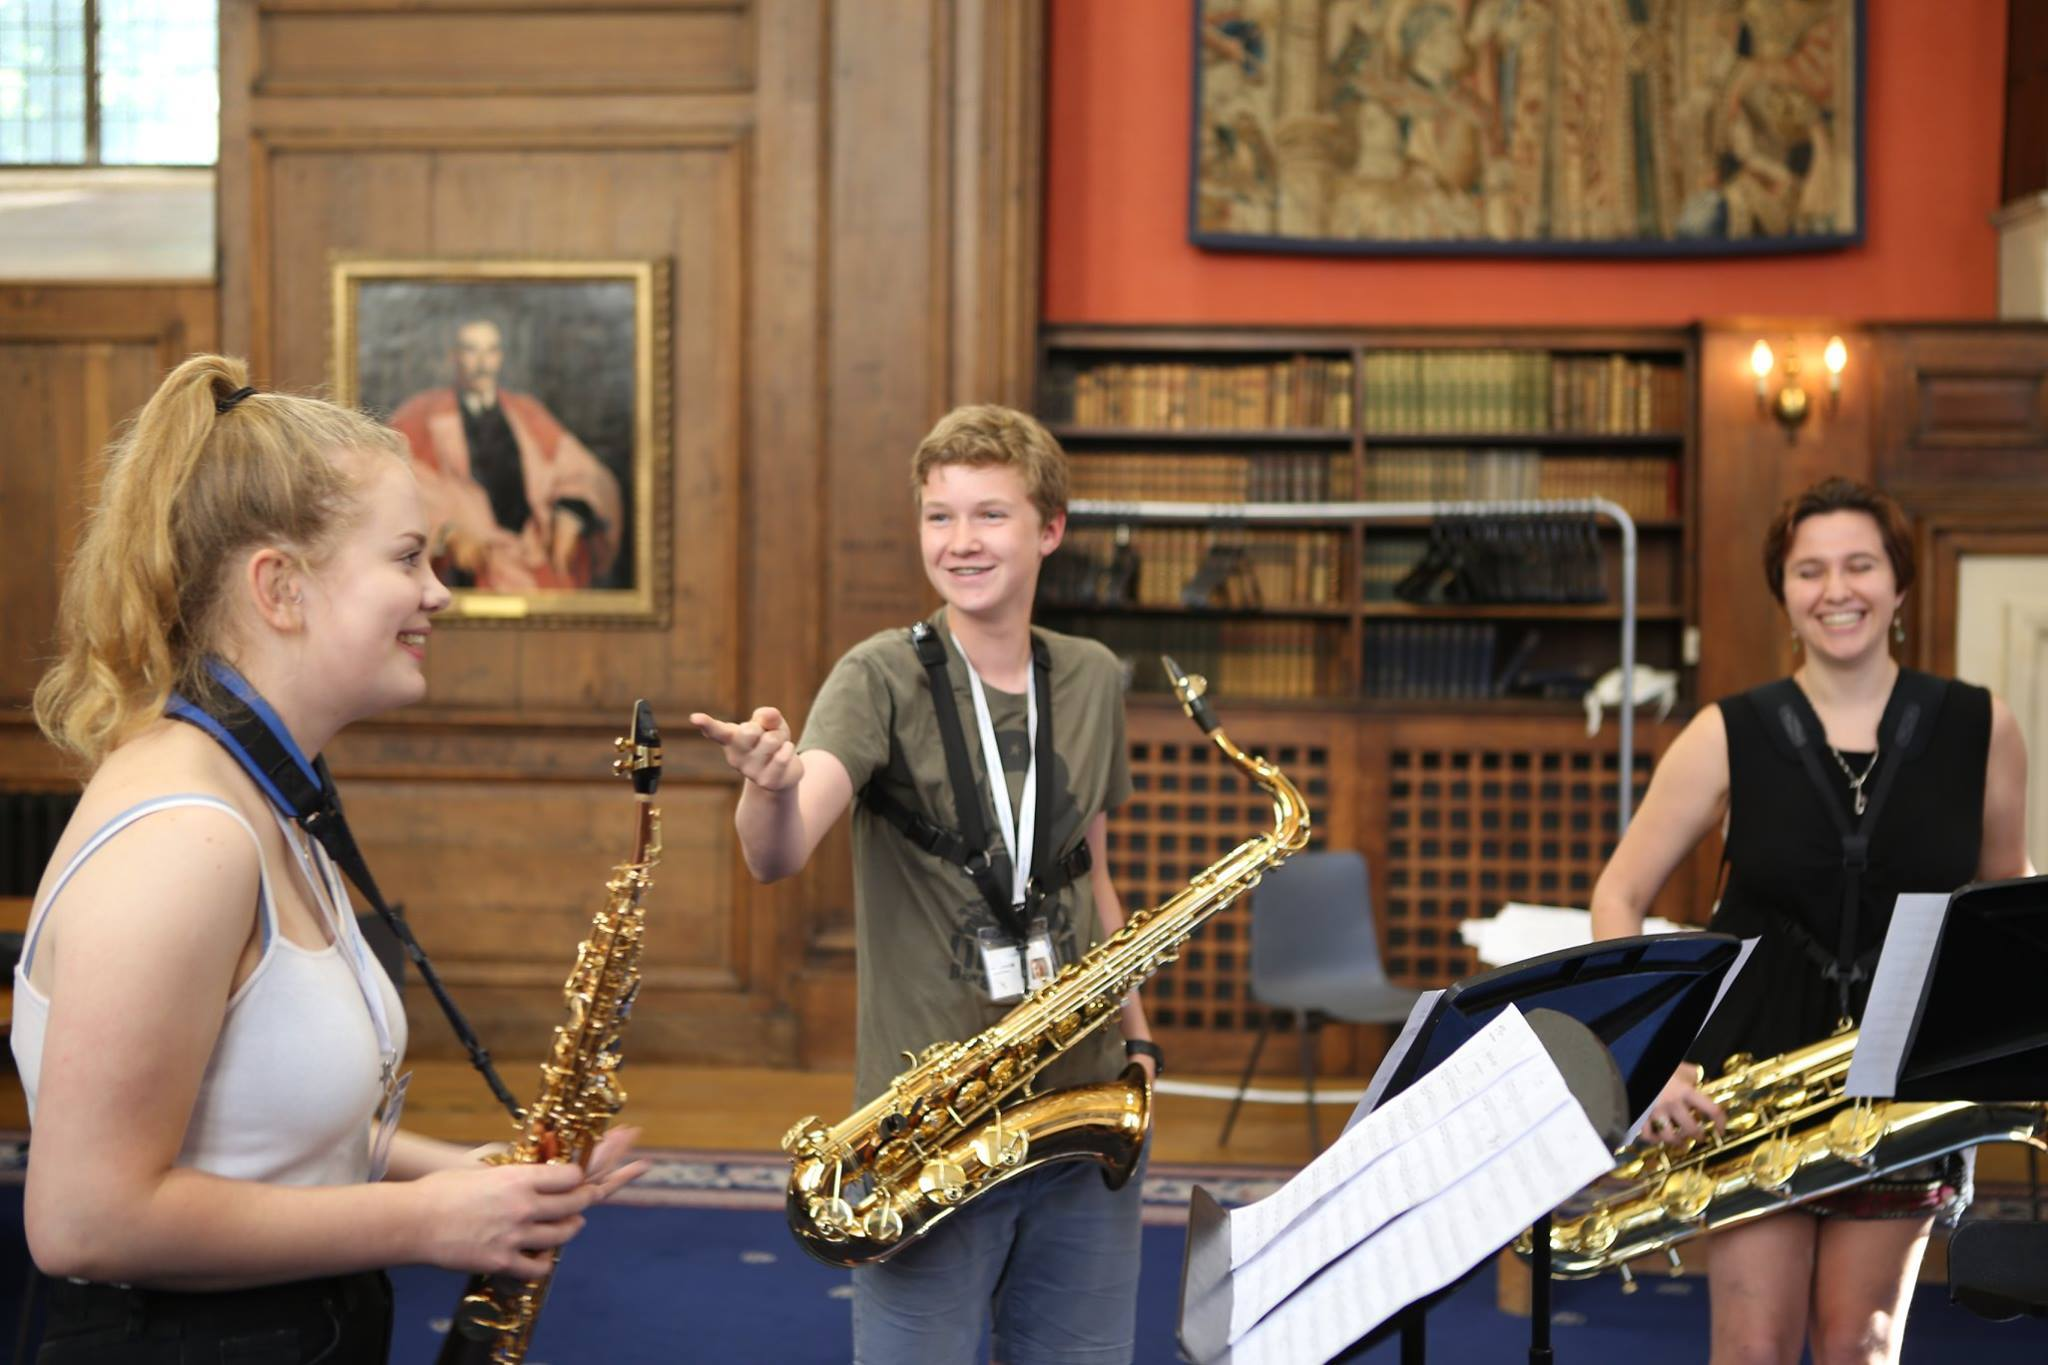 Saxophone quartet rehearsal with young musicians